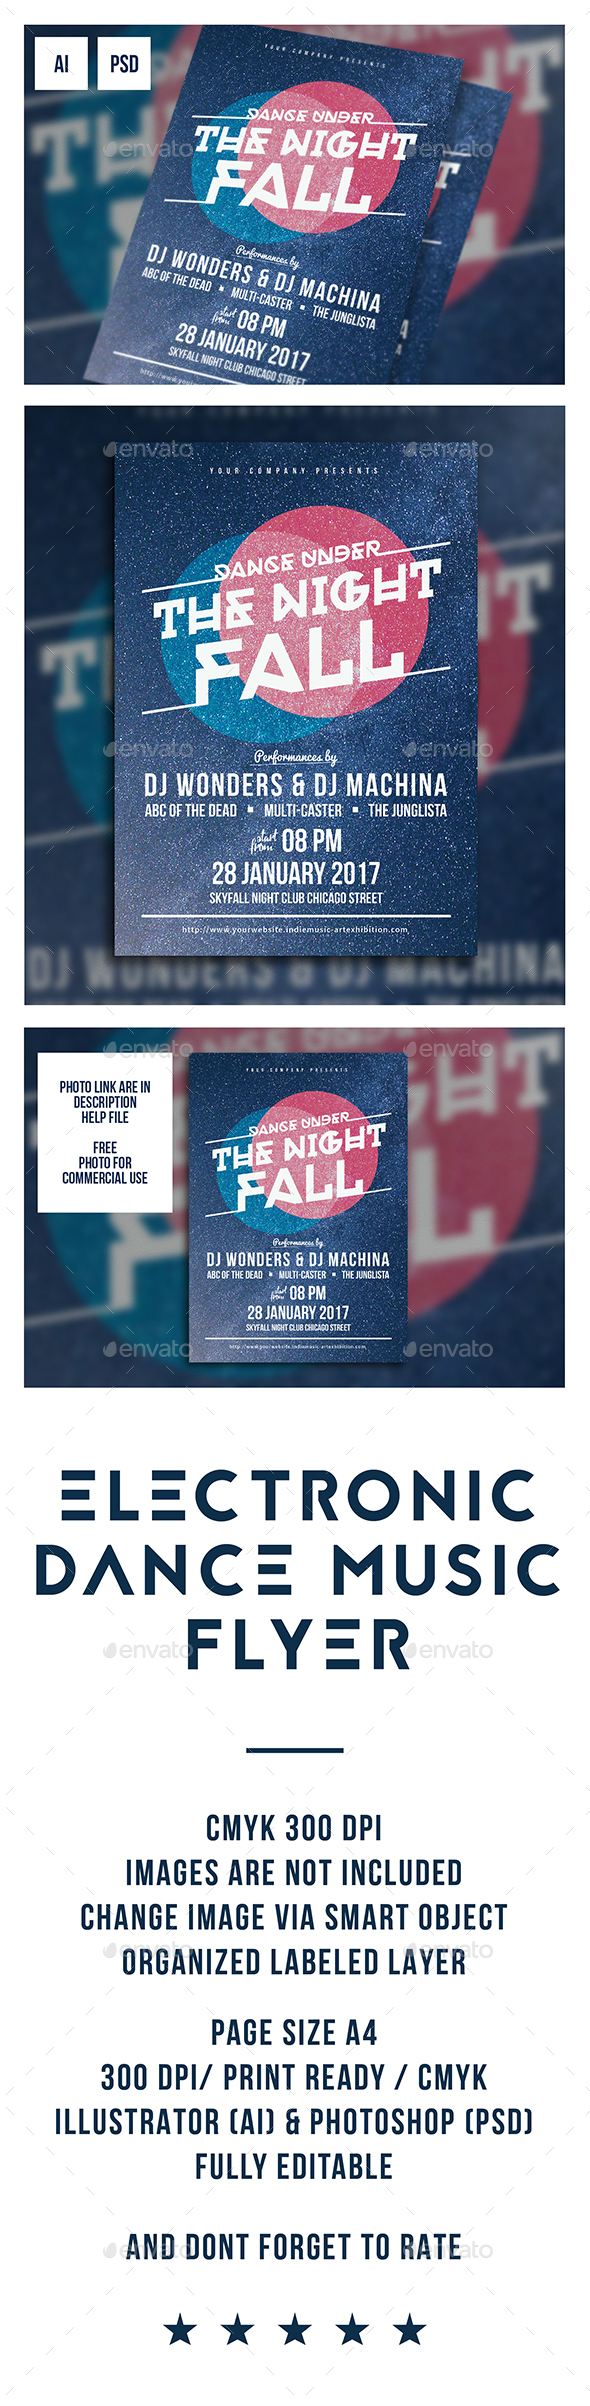 Electronic Dance Music Flyer - Clubs & Parties Events